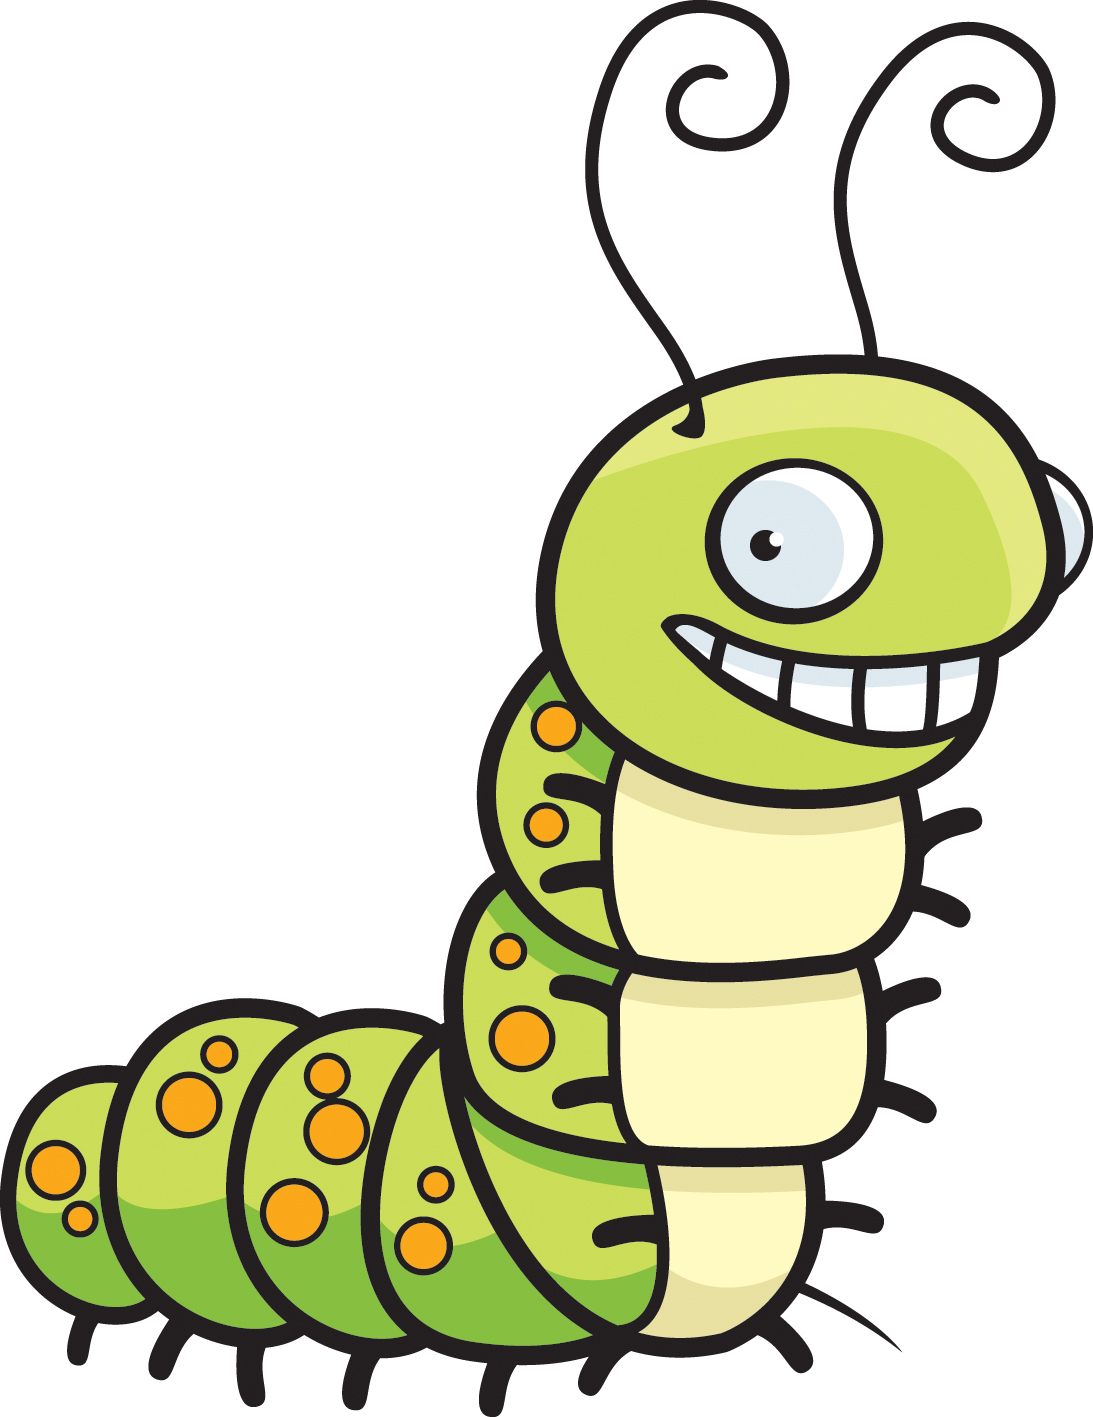 caterpillar clipart clipart panda free clipart images rh clipartpanda com clipart caterpillar head clipart caterpillar black and white